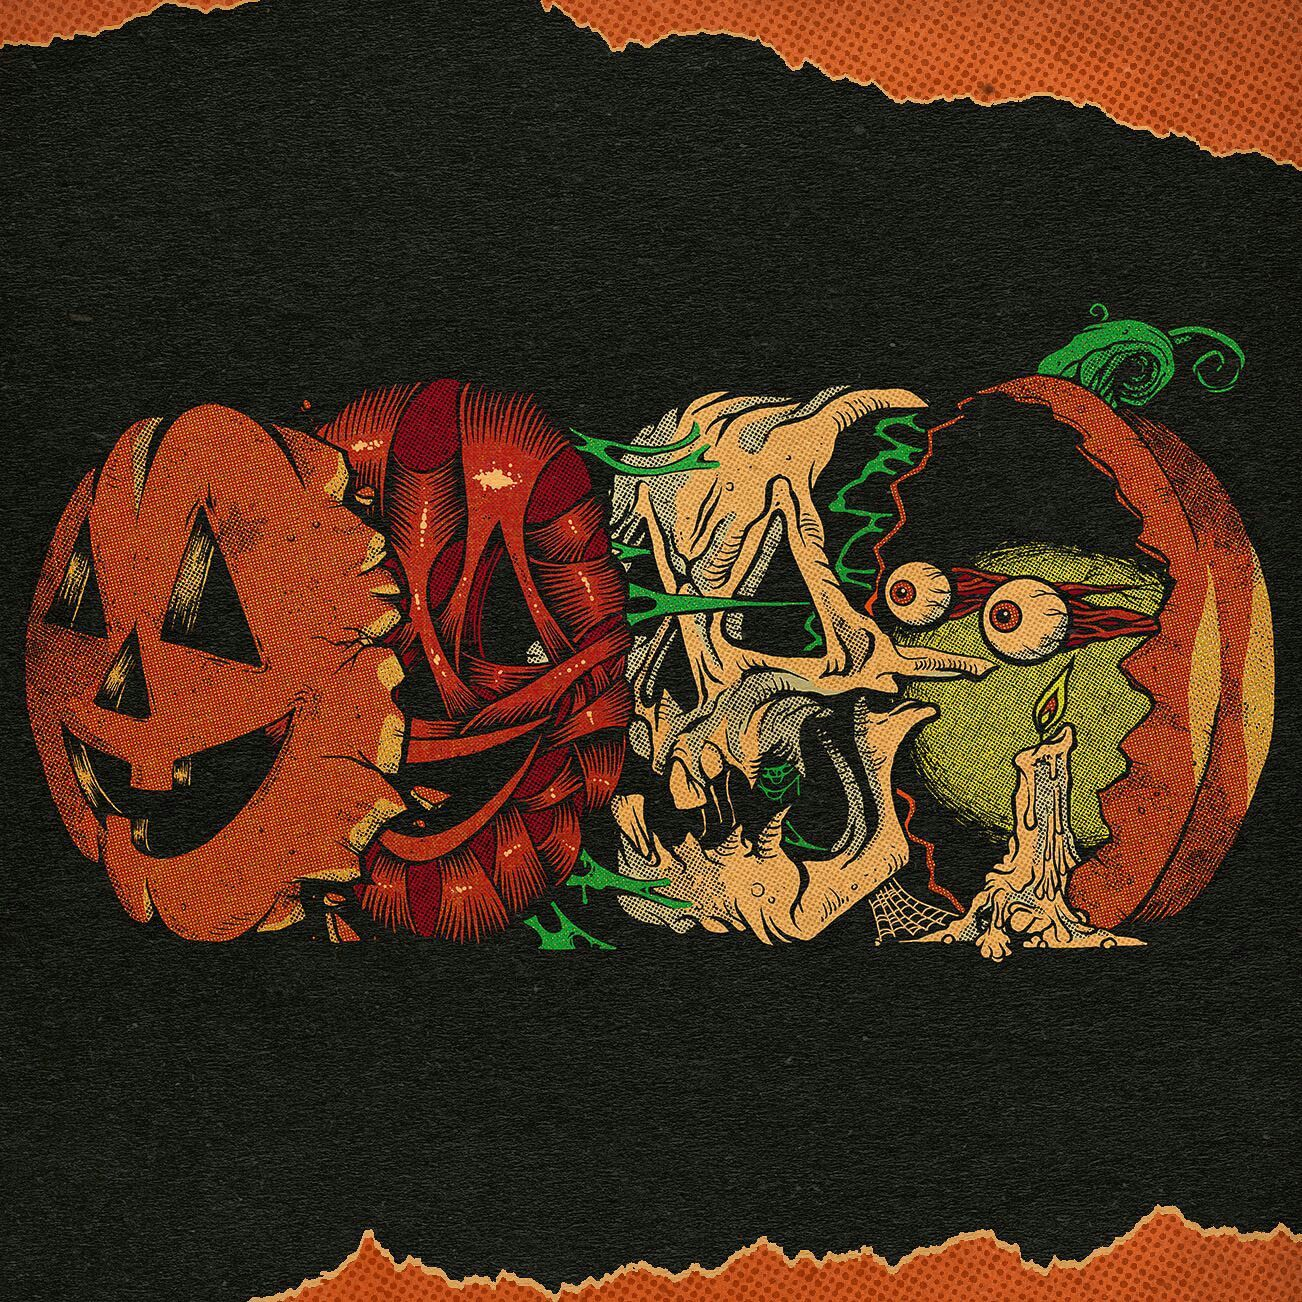 Spotify In 2020 Halloween Art Halloween Wallpaper Vintage Halloween